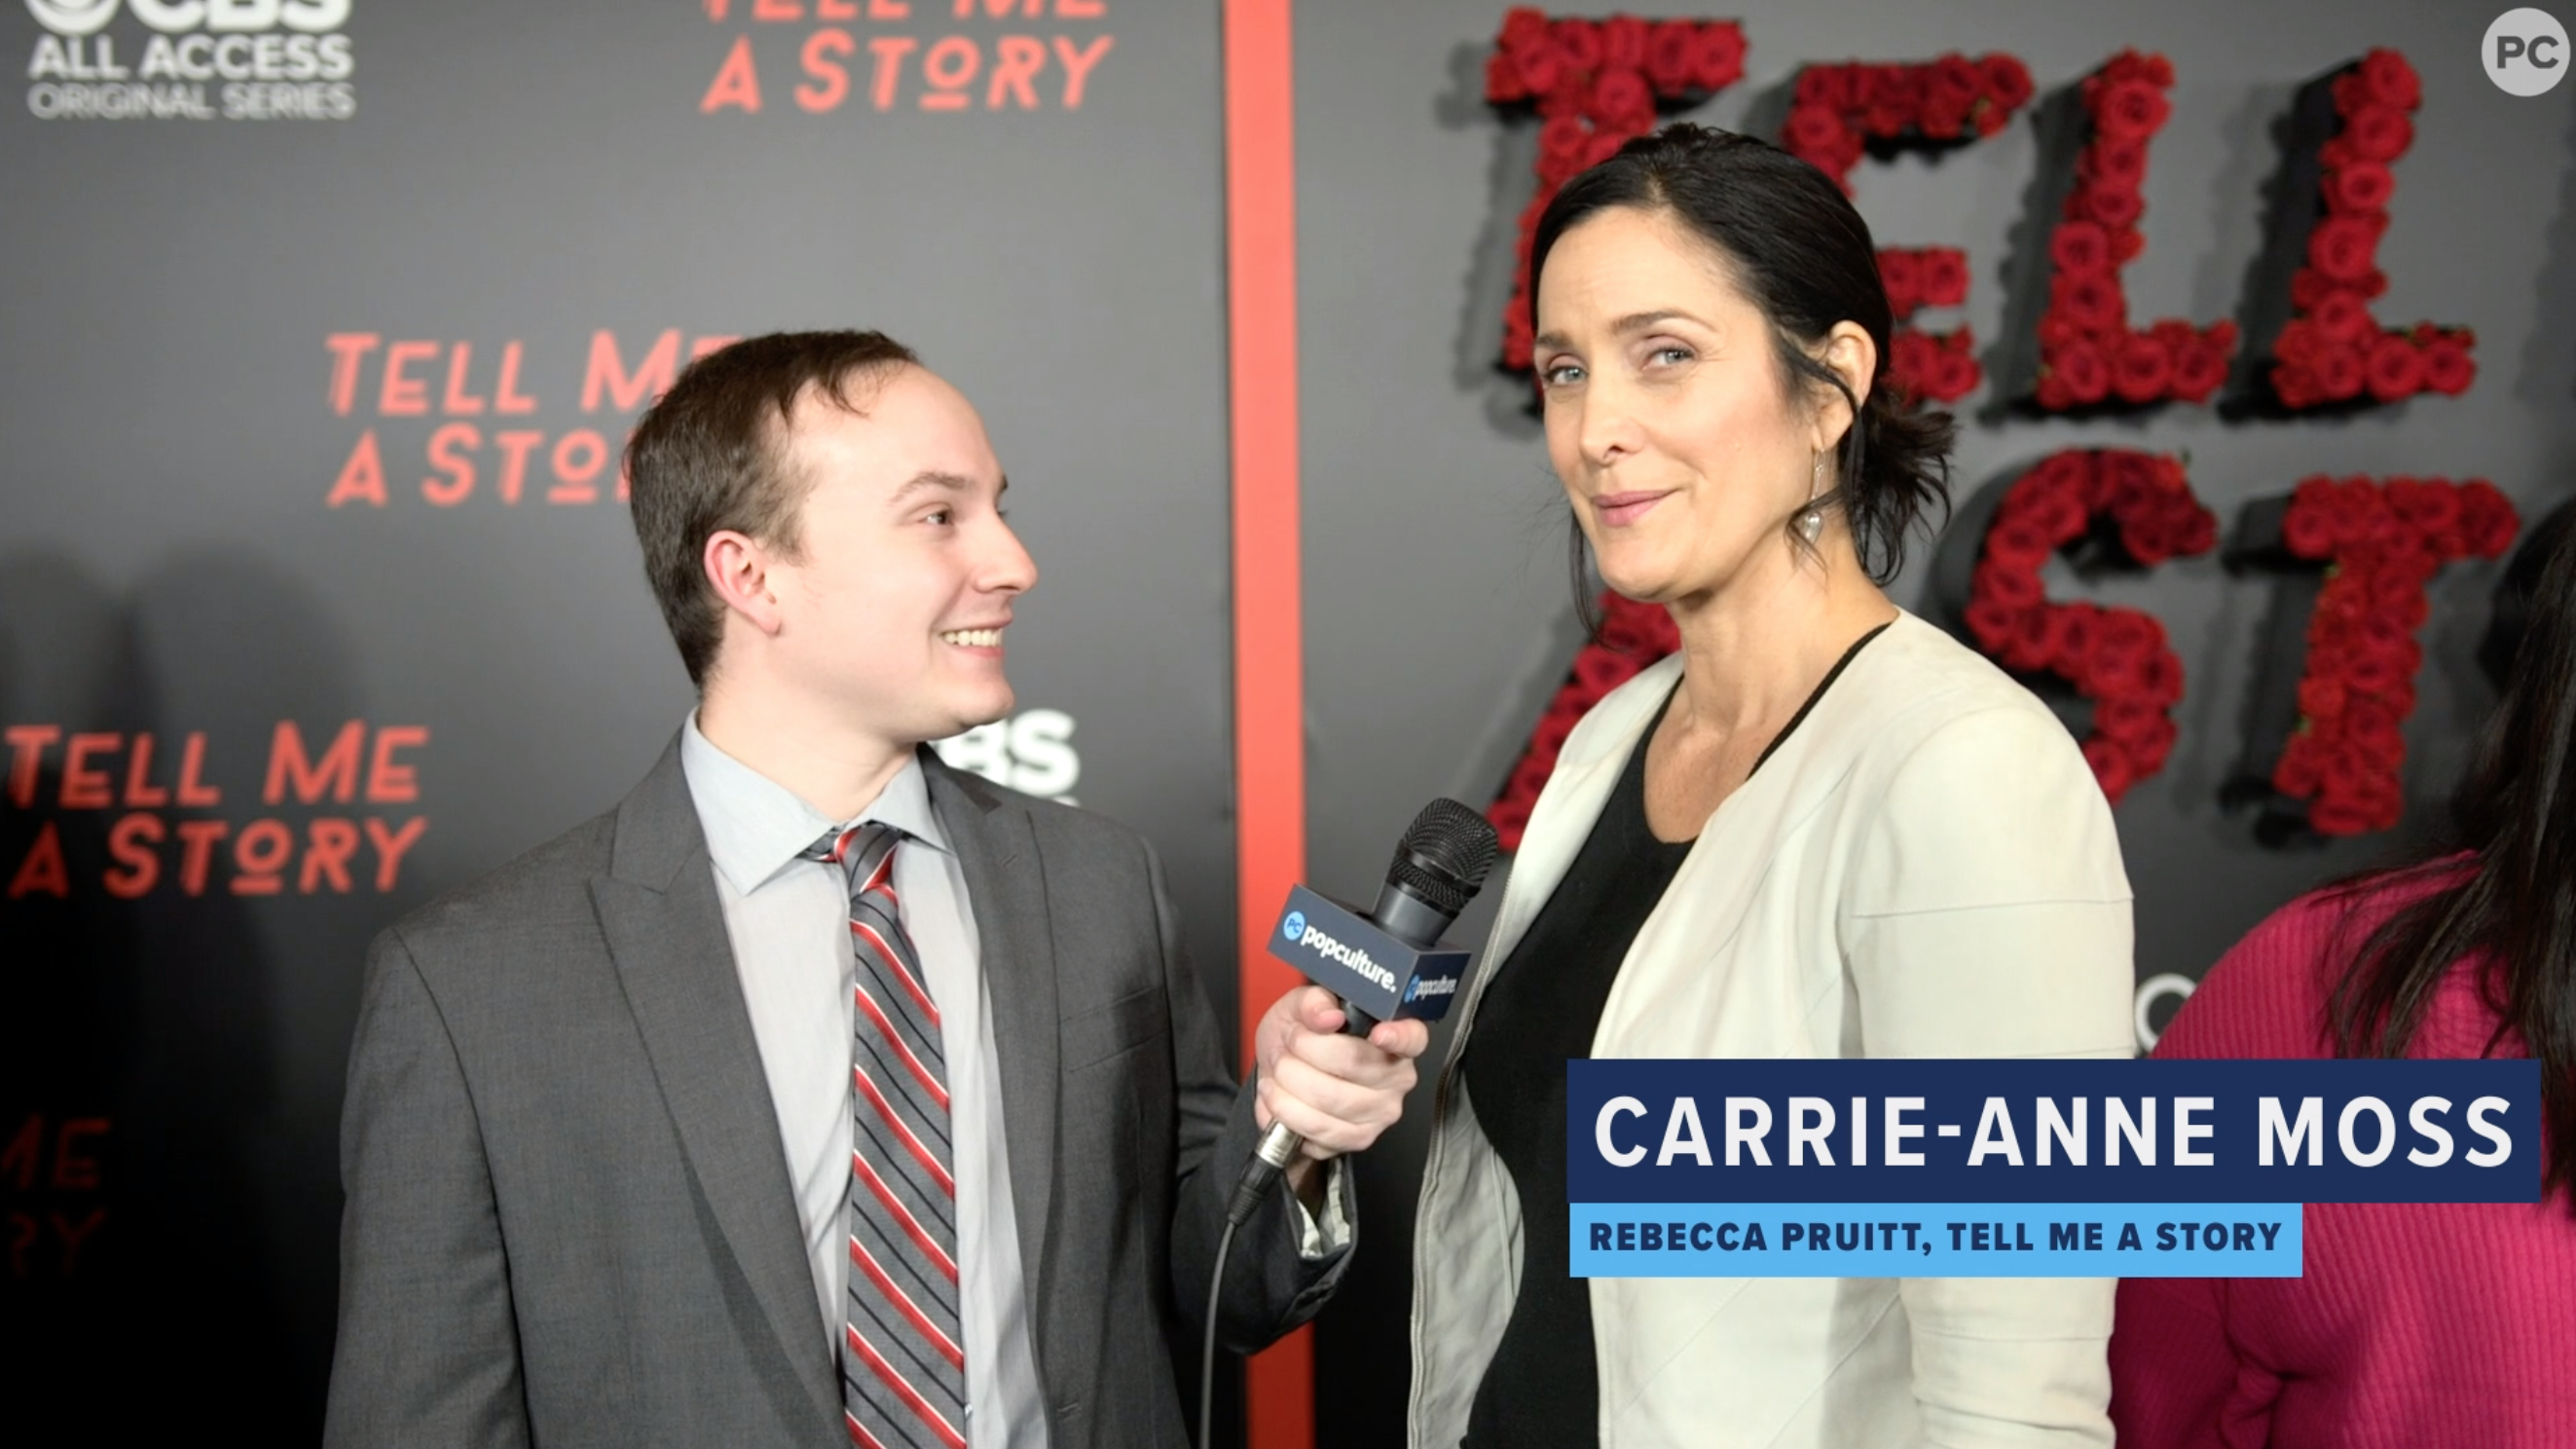 Carrie-Anne Moss Talks TELL ME A STORY screen capture